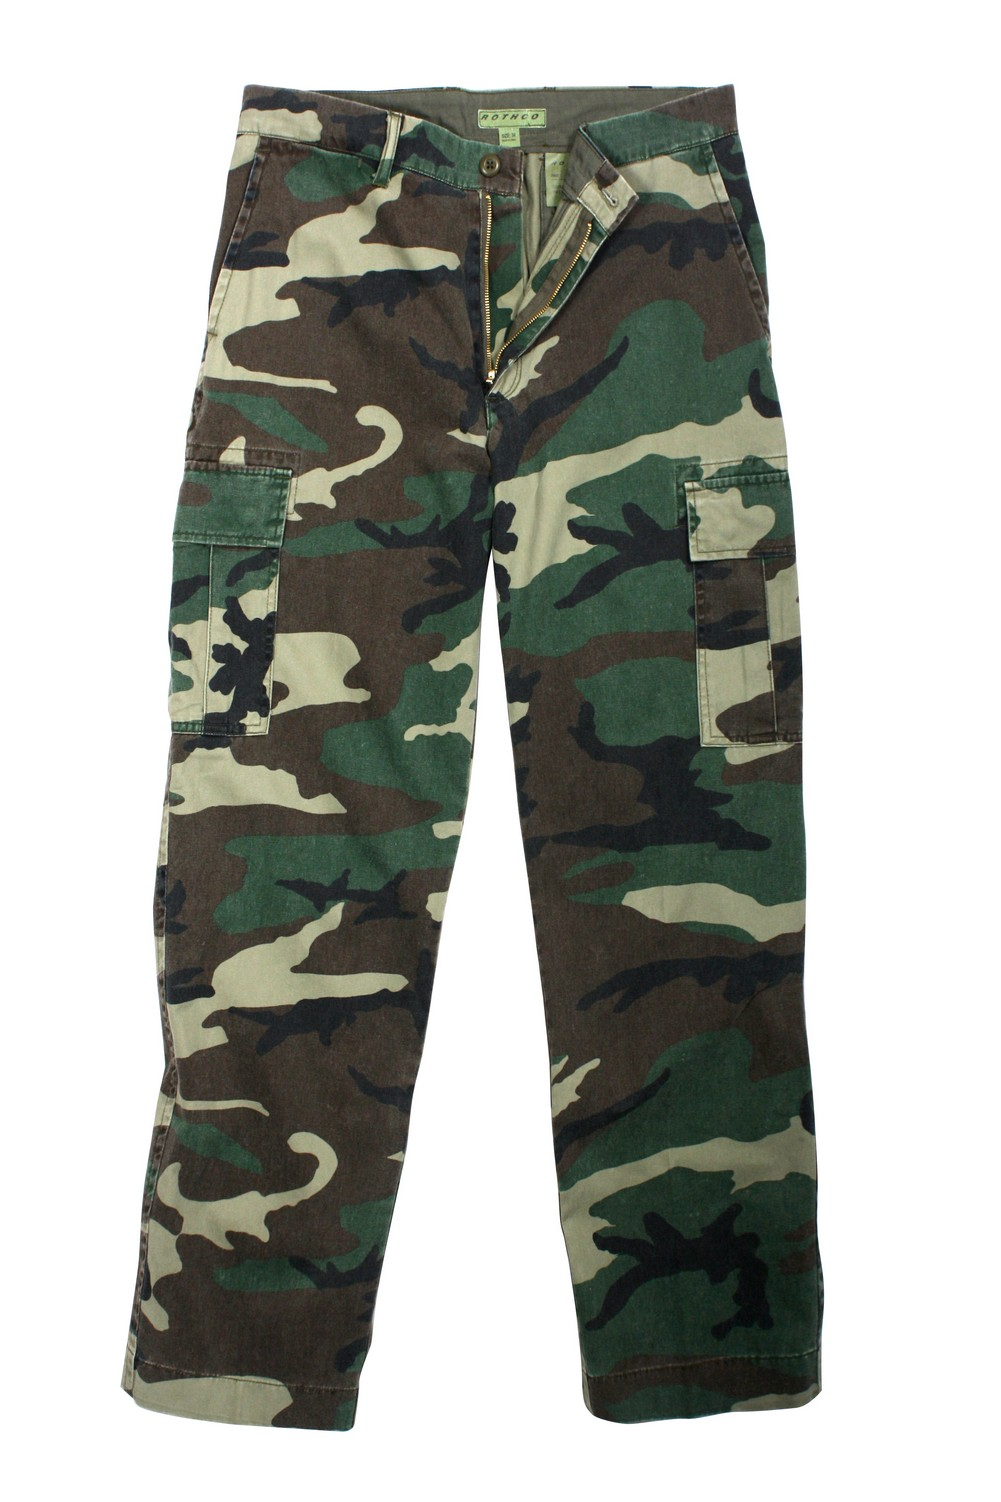 Rothco Mens Pants - Flat Front Vintage Cargo, Woodland Camo by Rothco at Sears.com